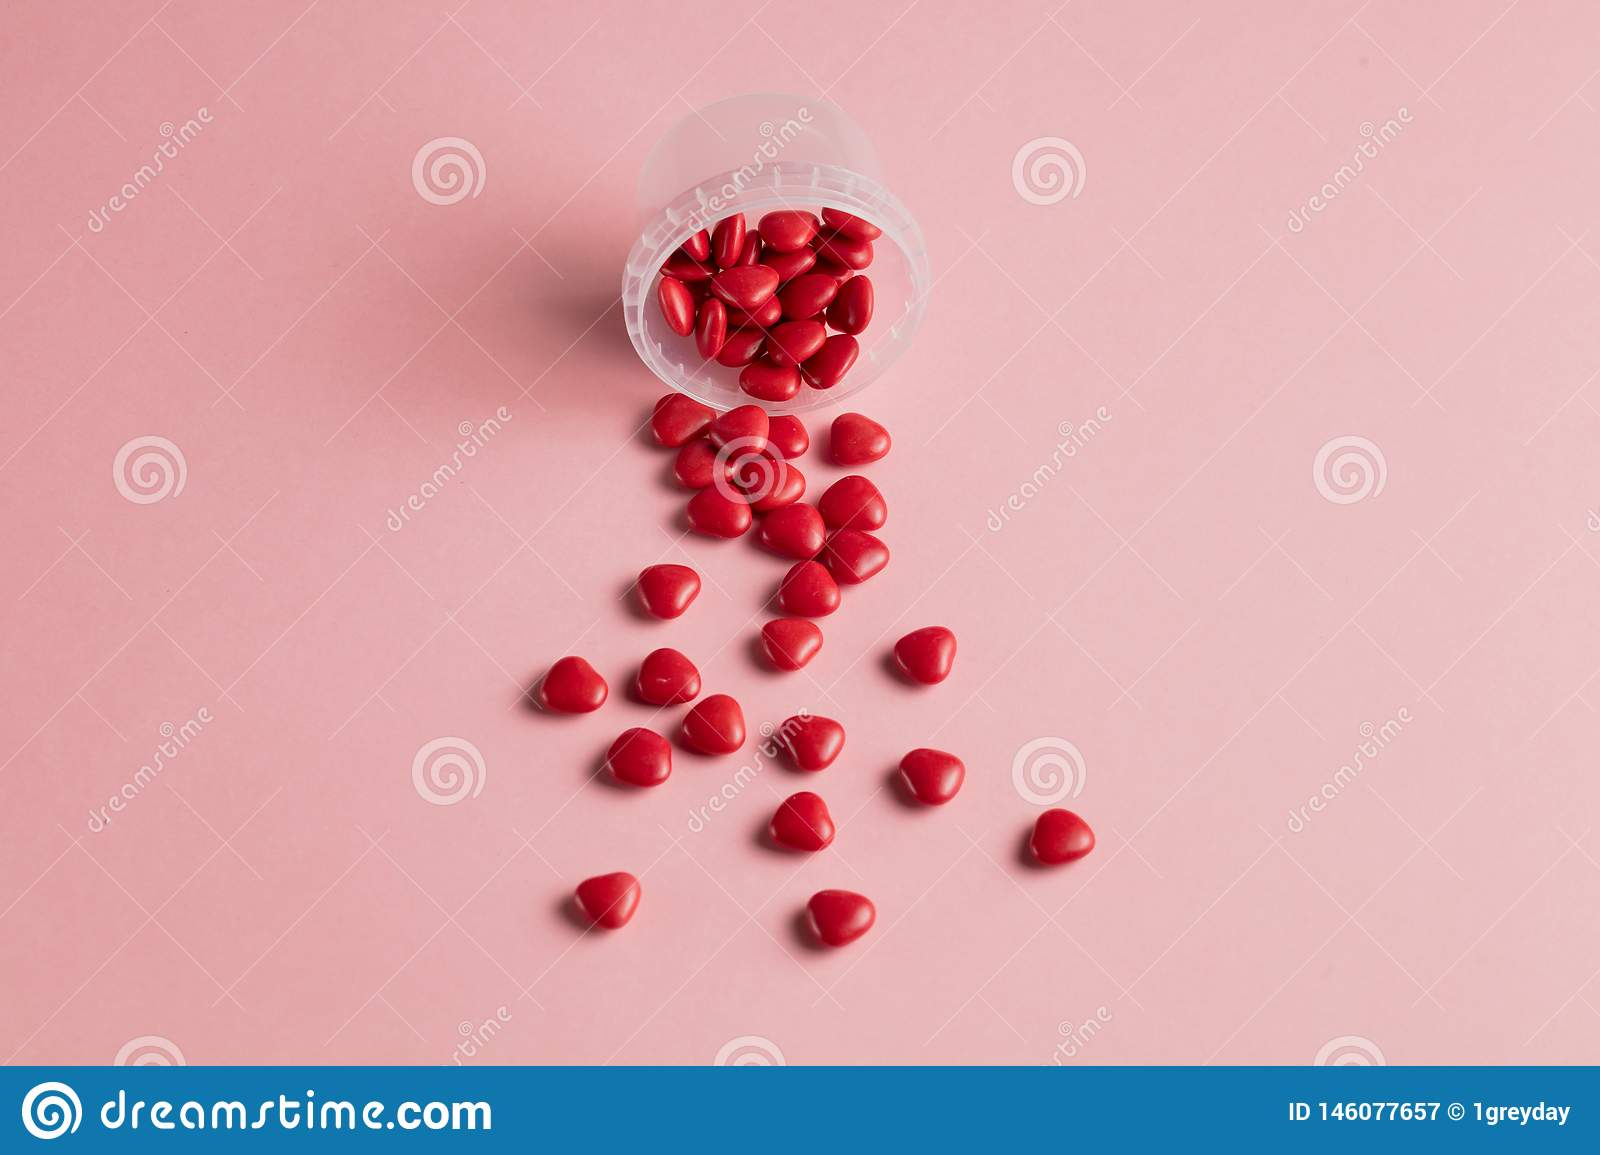 Minimal concept . red little hearts with open glass bottle on pink background